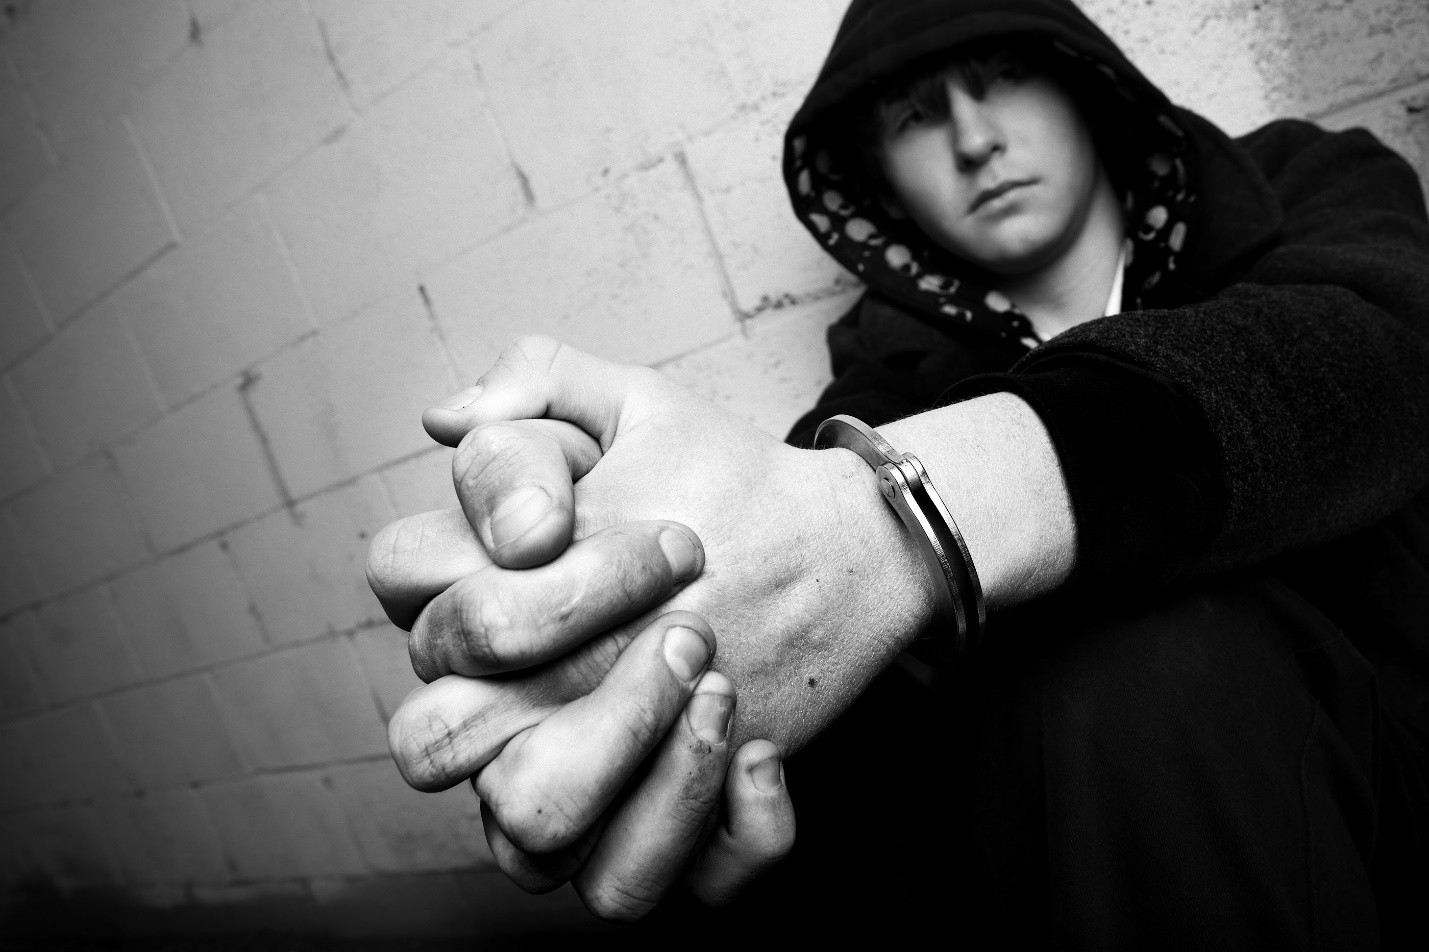 new york city stalking defense lawyer - The Difference Between Stalking and Harassment in Queens